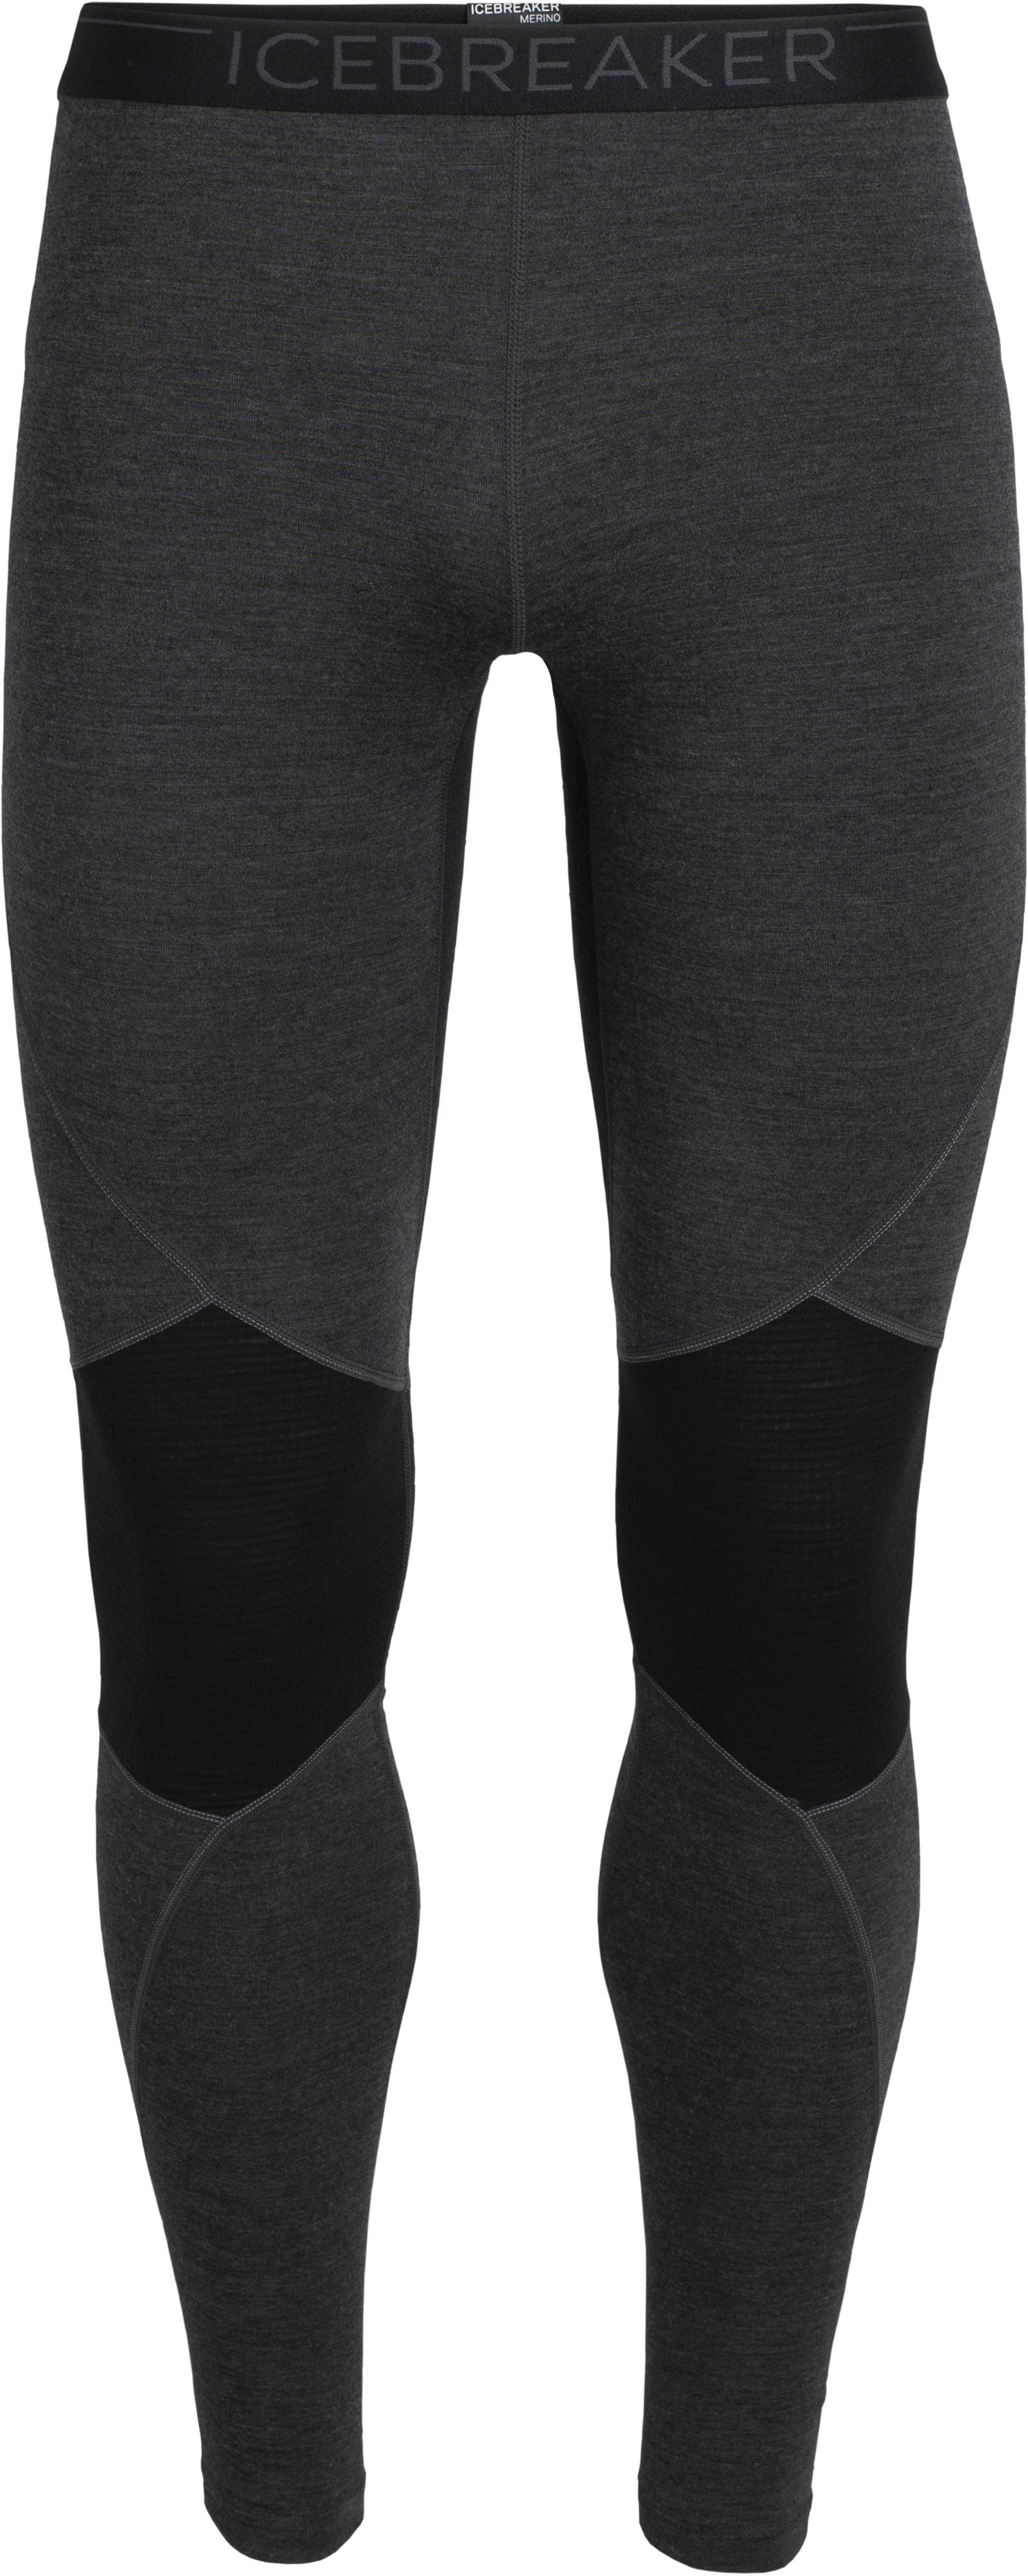 M's 260 Zone Leggings